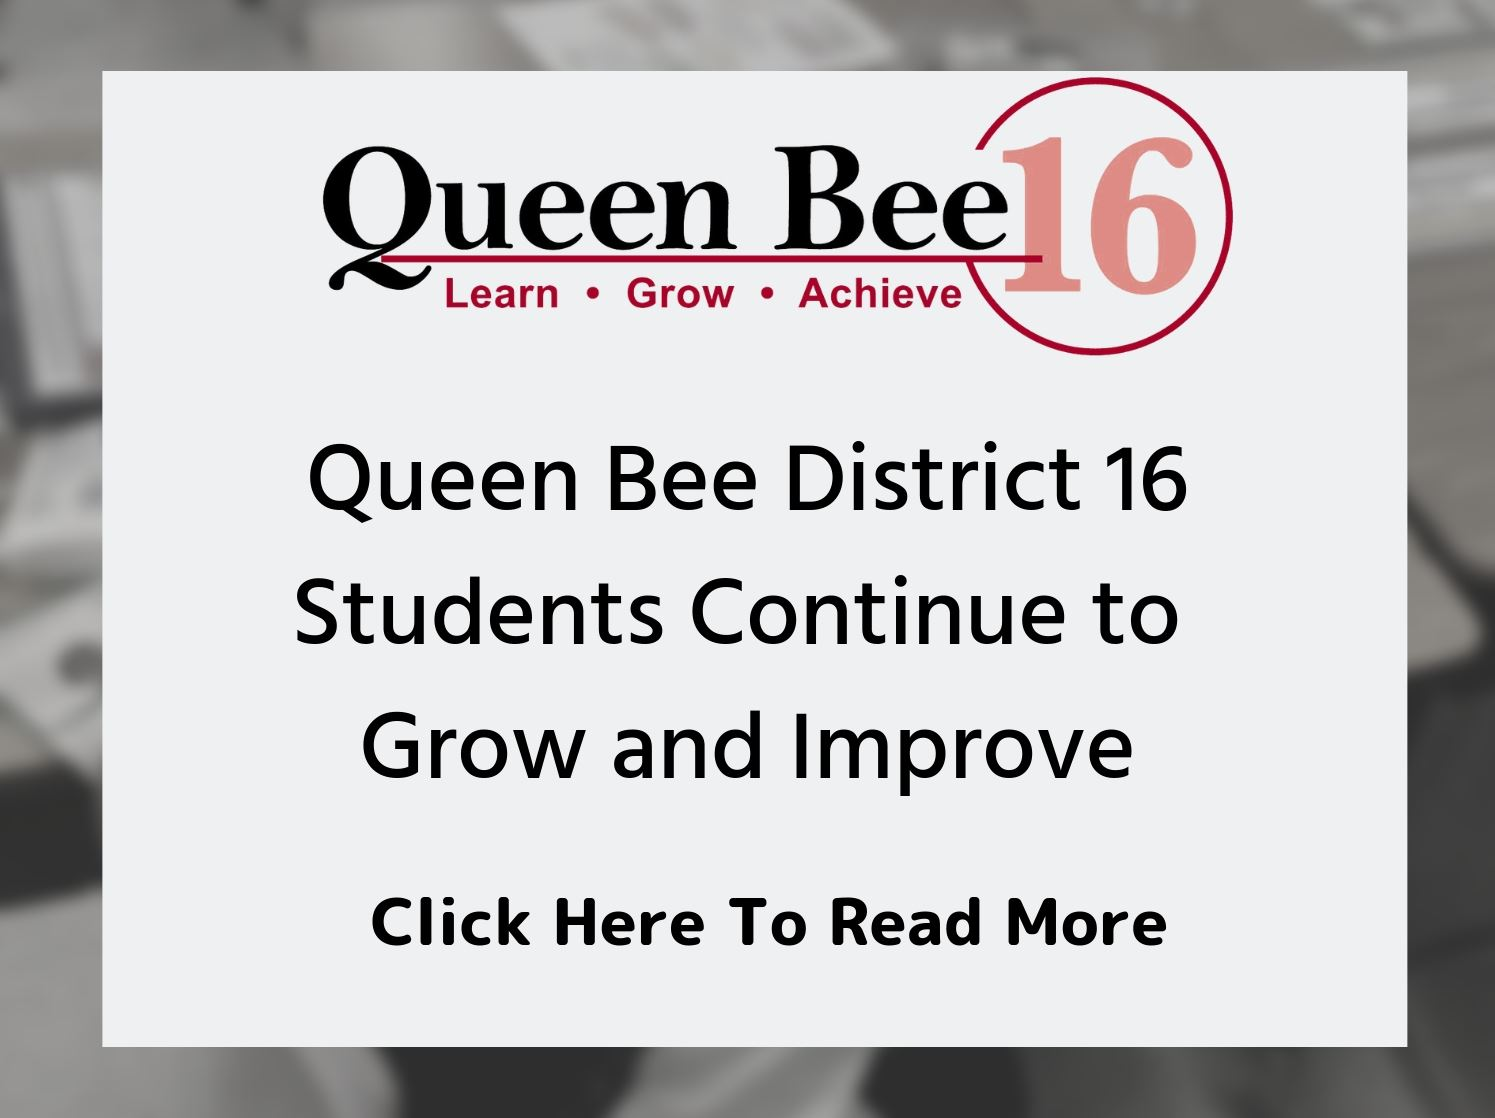 Queen Bee 16 Illinois School Results